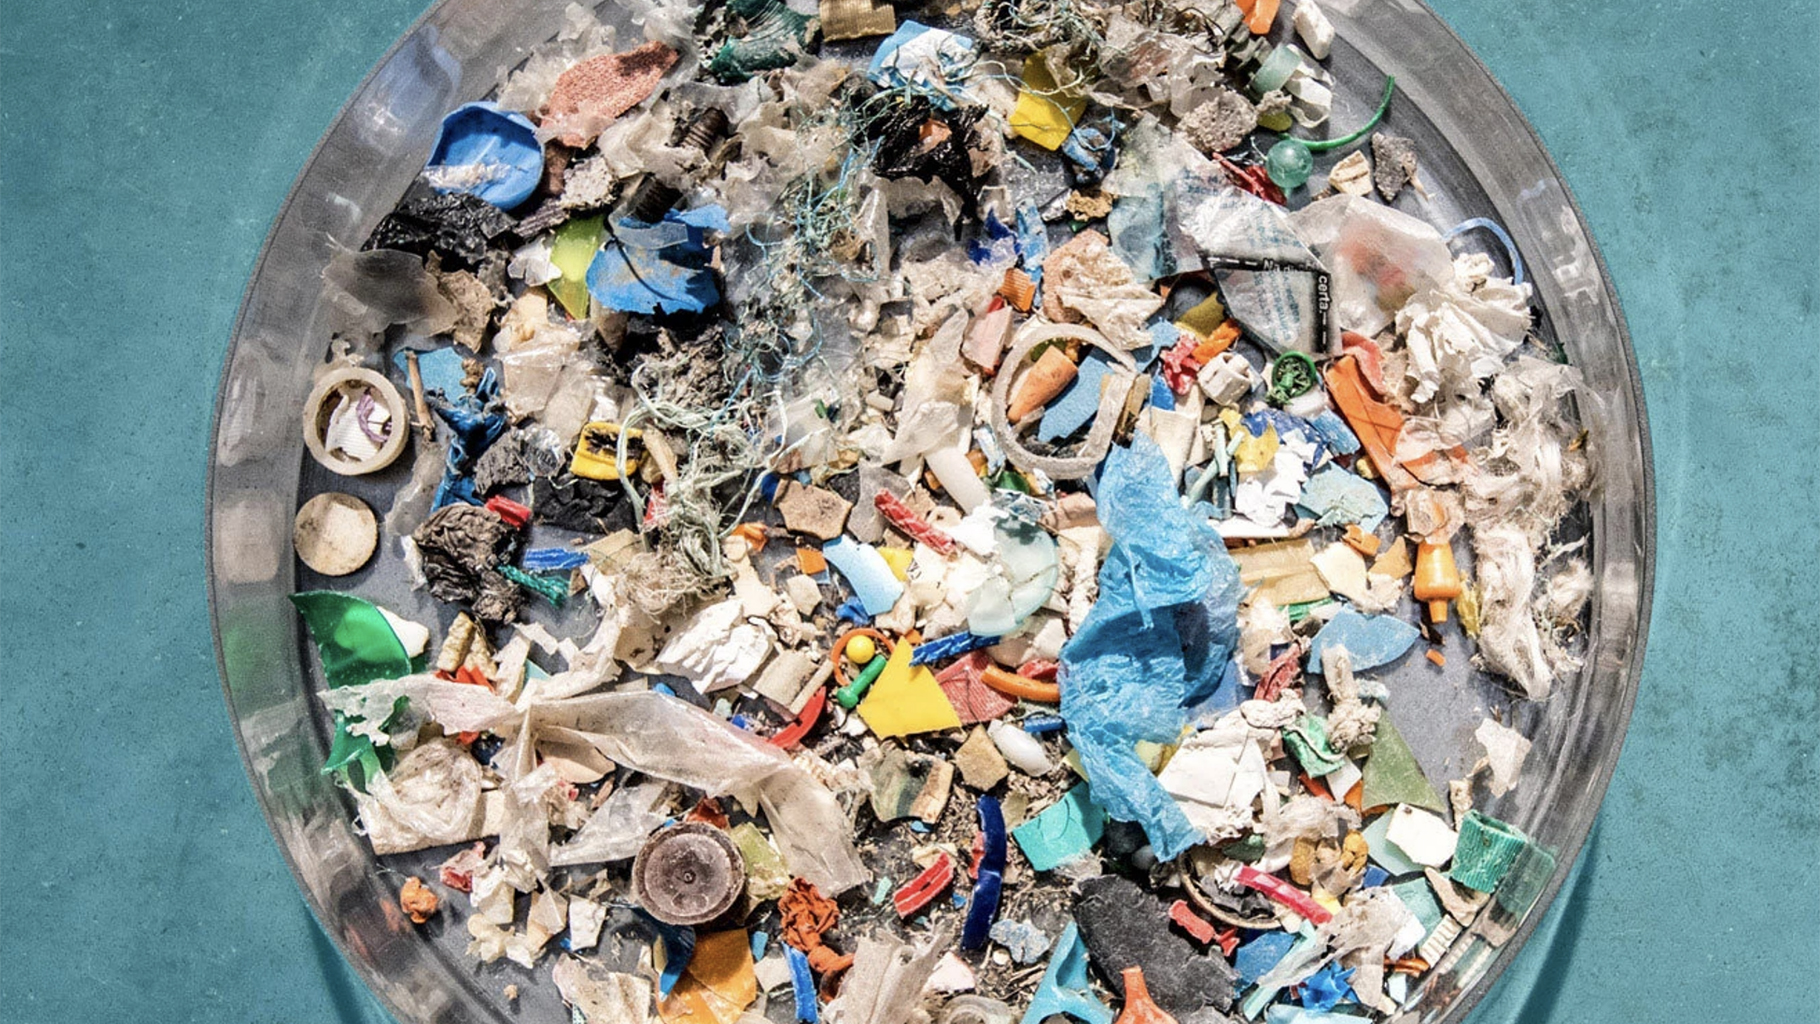 Plastic Pollution Affects Sea Life Throughout the Ocean | The Pew  Charitable Trusts